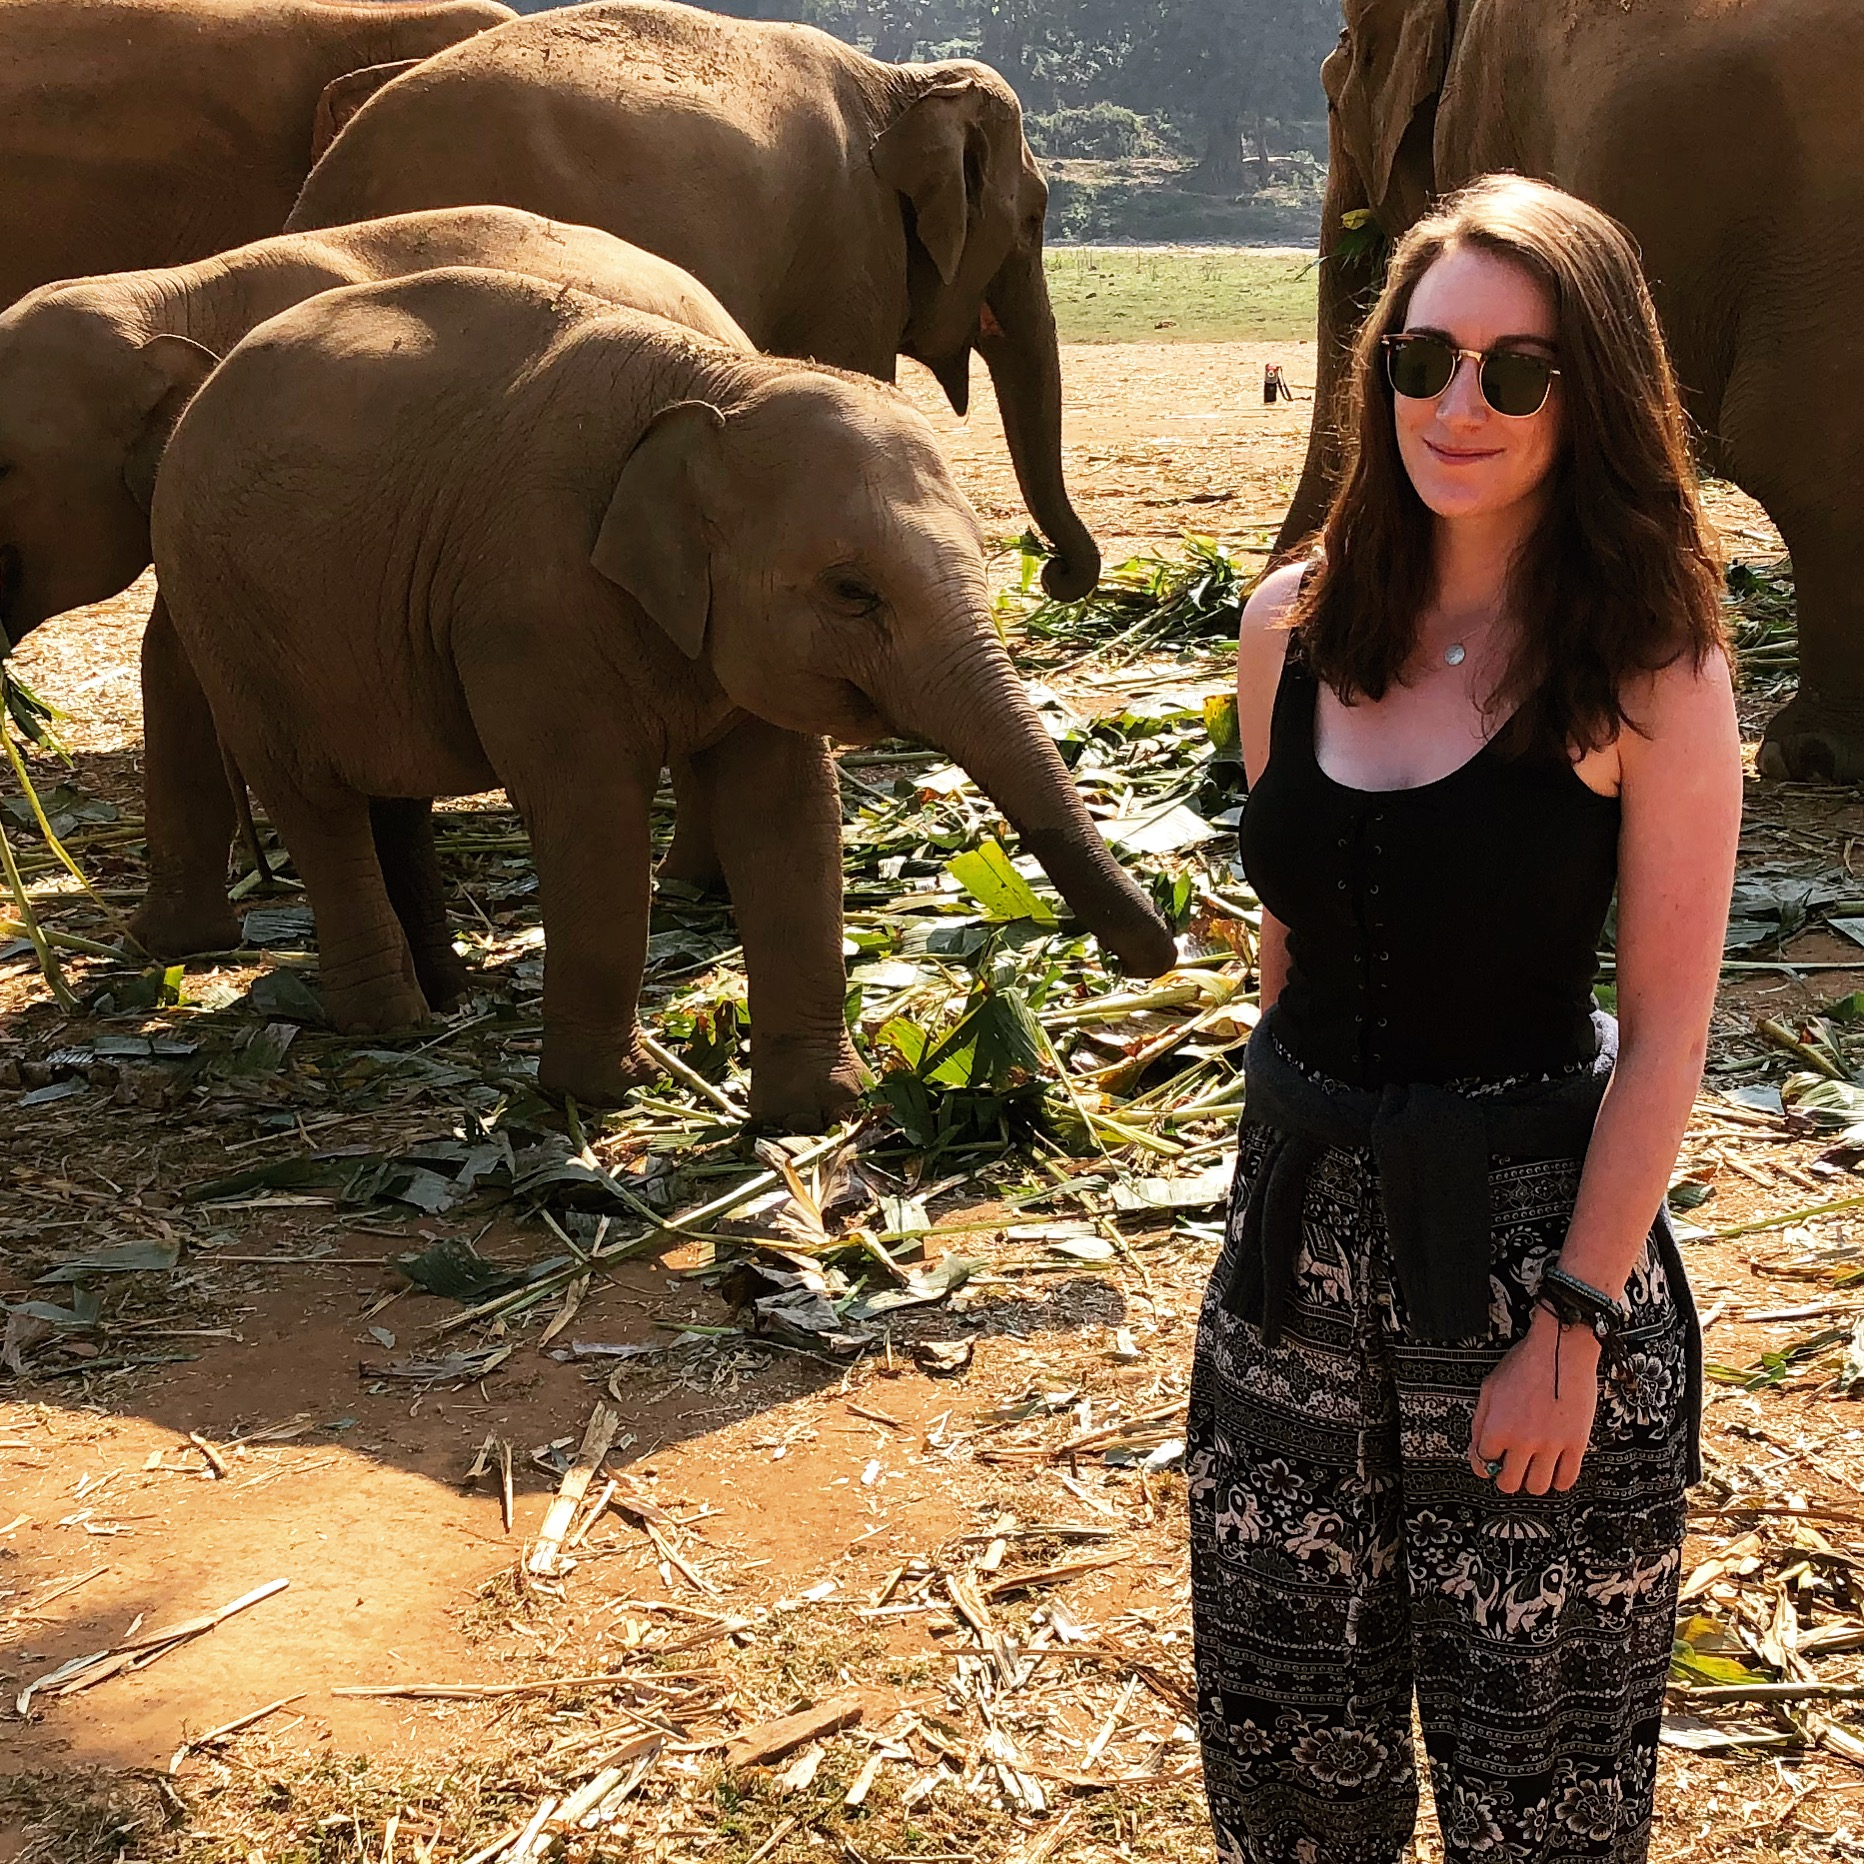 Embracing the no-bra-life at the elephant park: traveling with big boobs